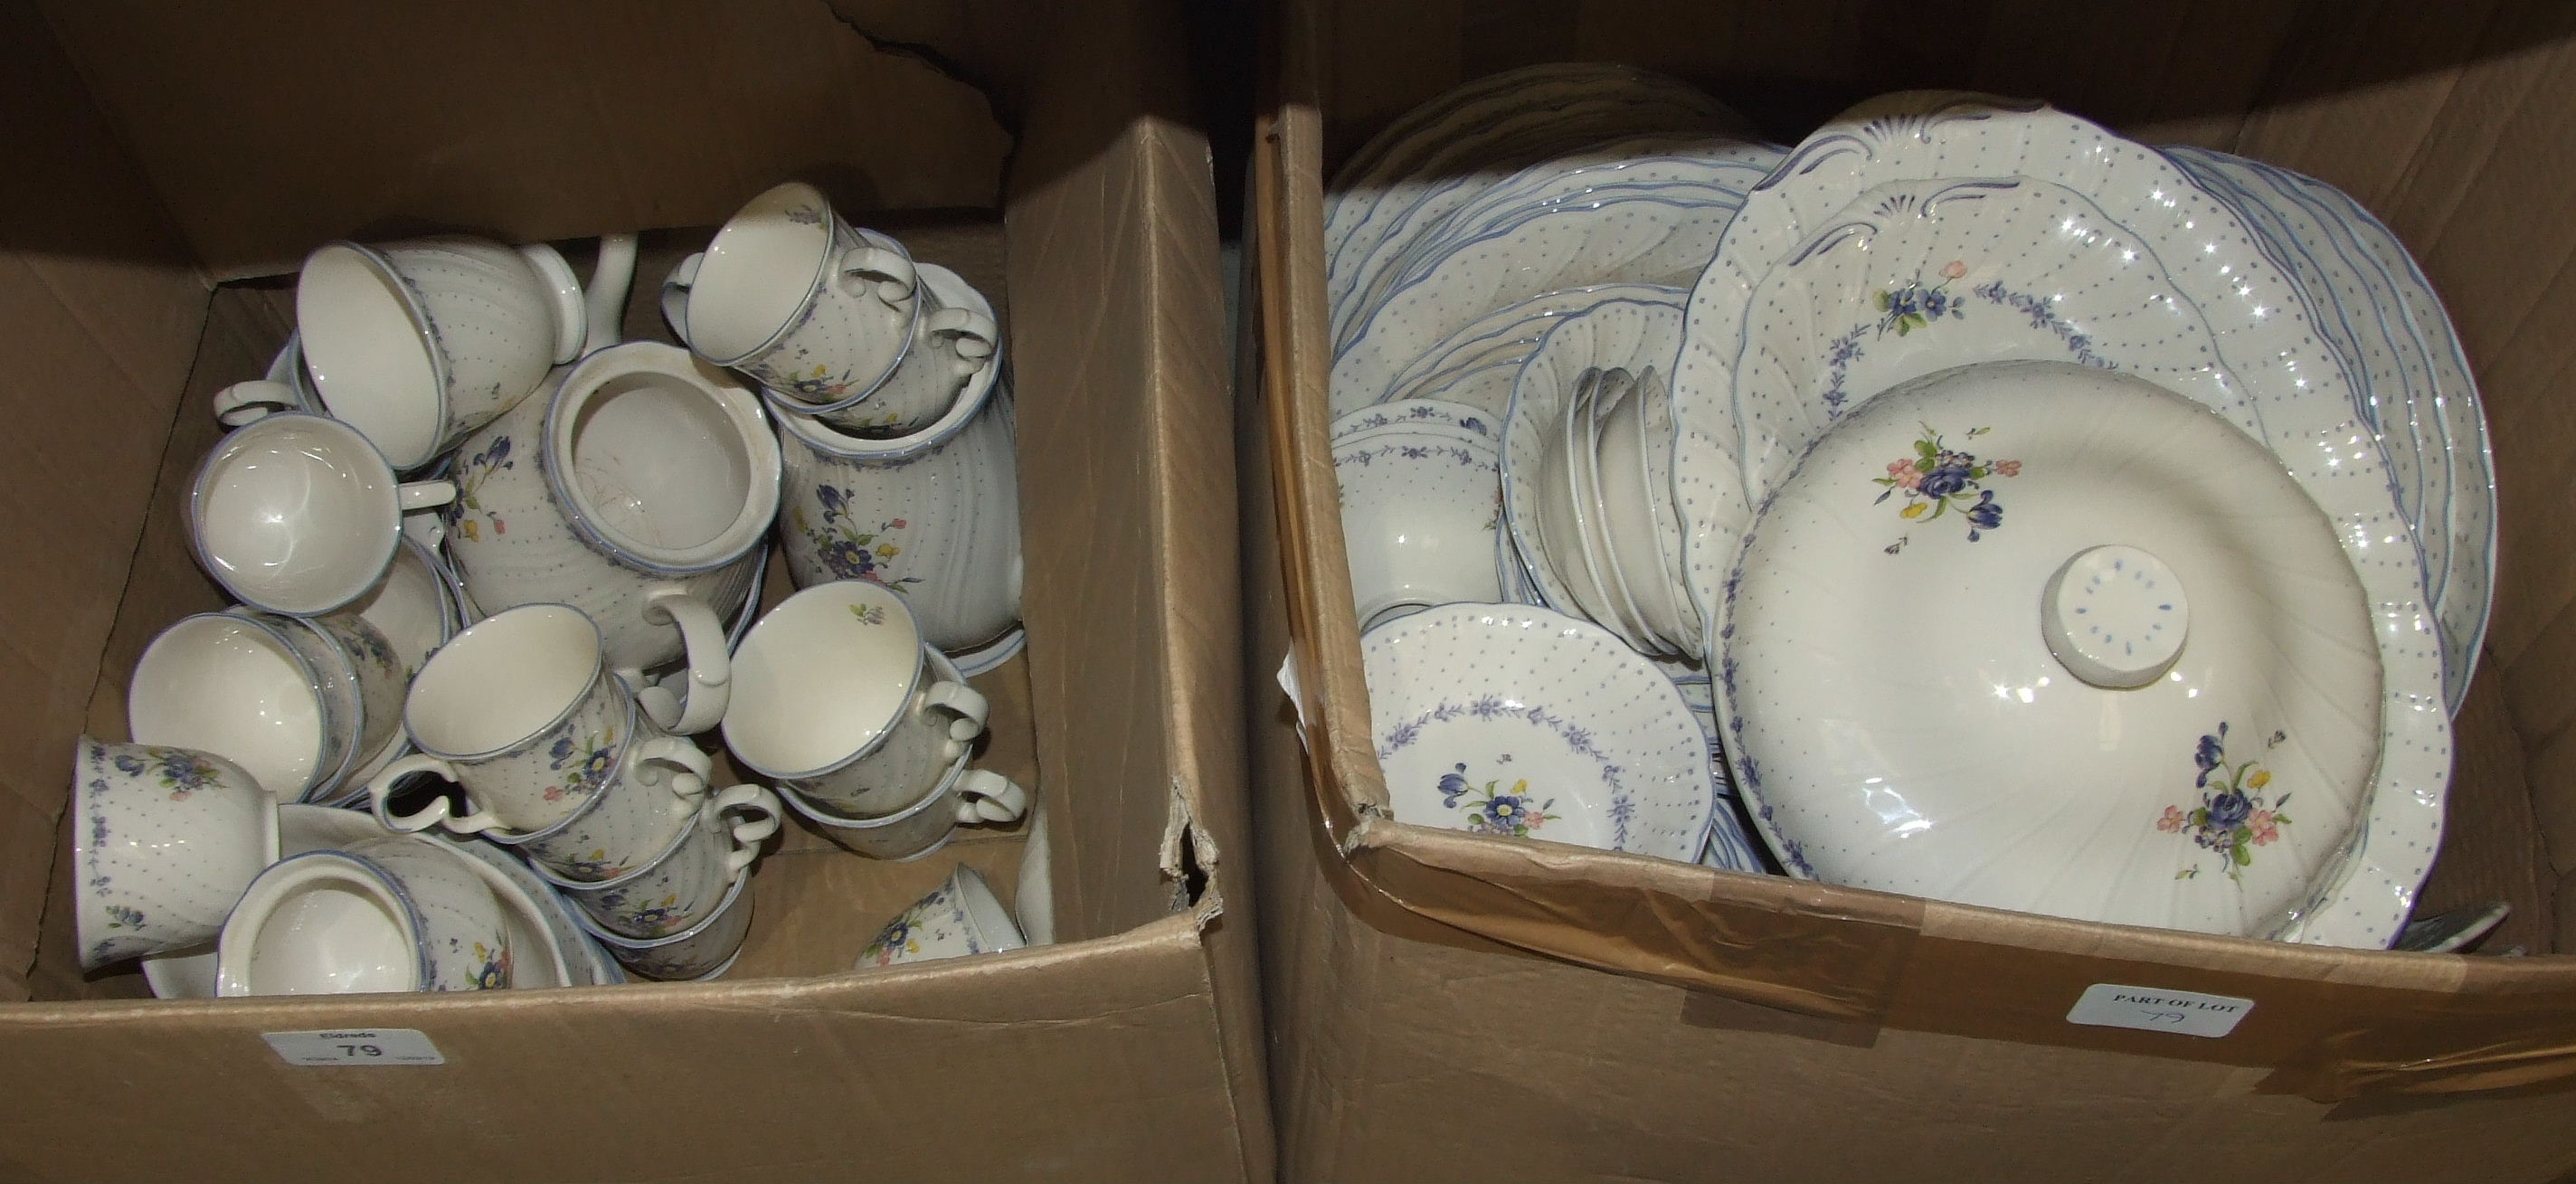 Lot 99 - Approximately seventy pieces of Royal Doulton 'Charade' tea, coffee and dinner ware and a large